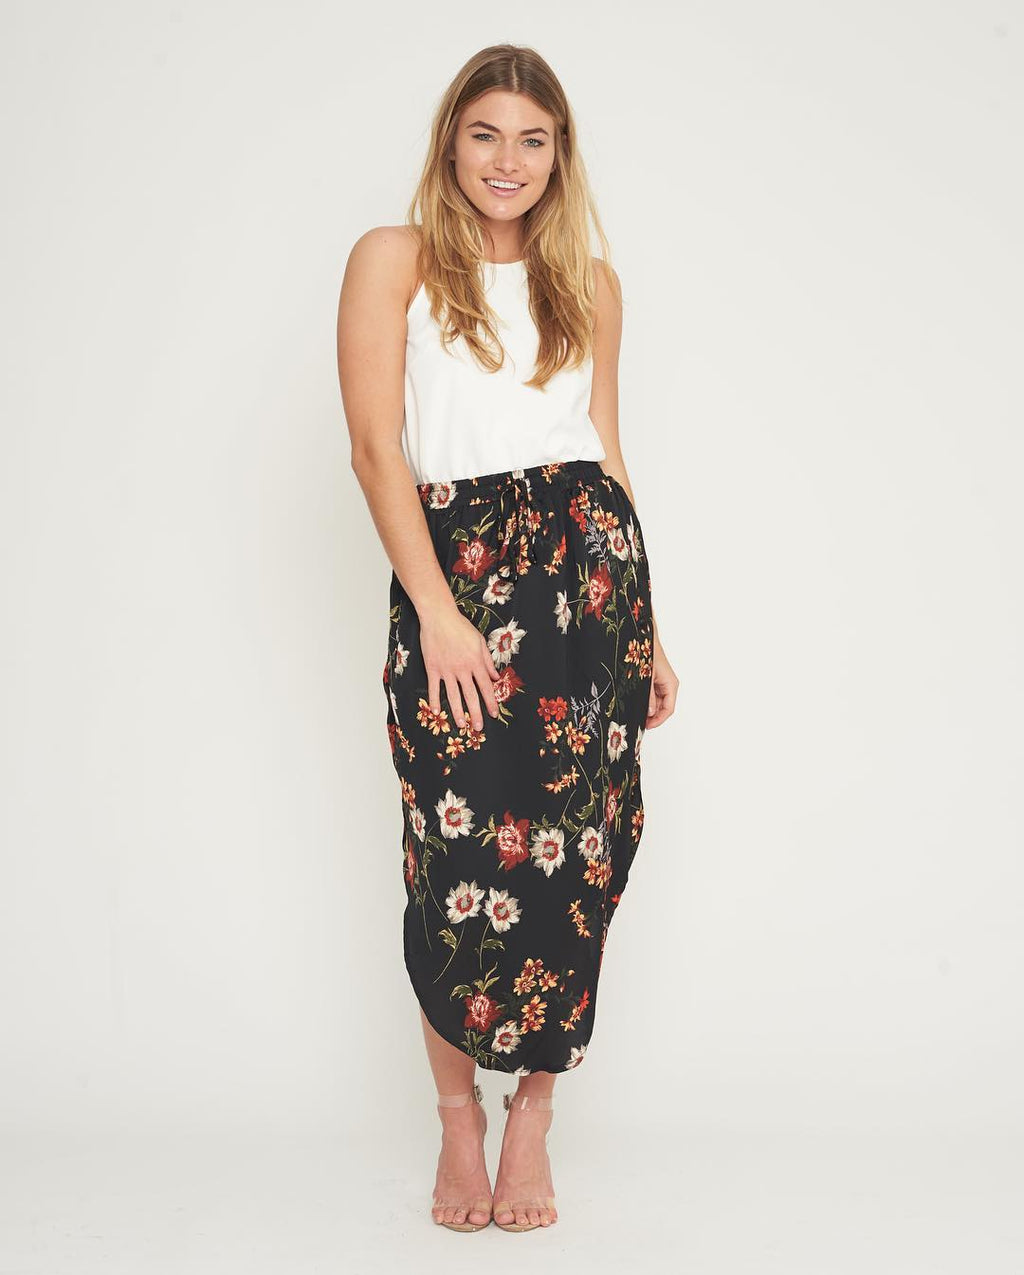 White Closet - Black Floral Skirt